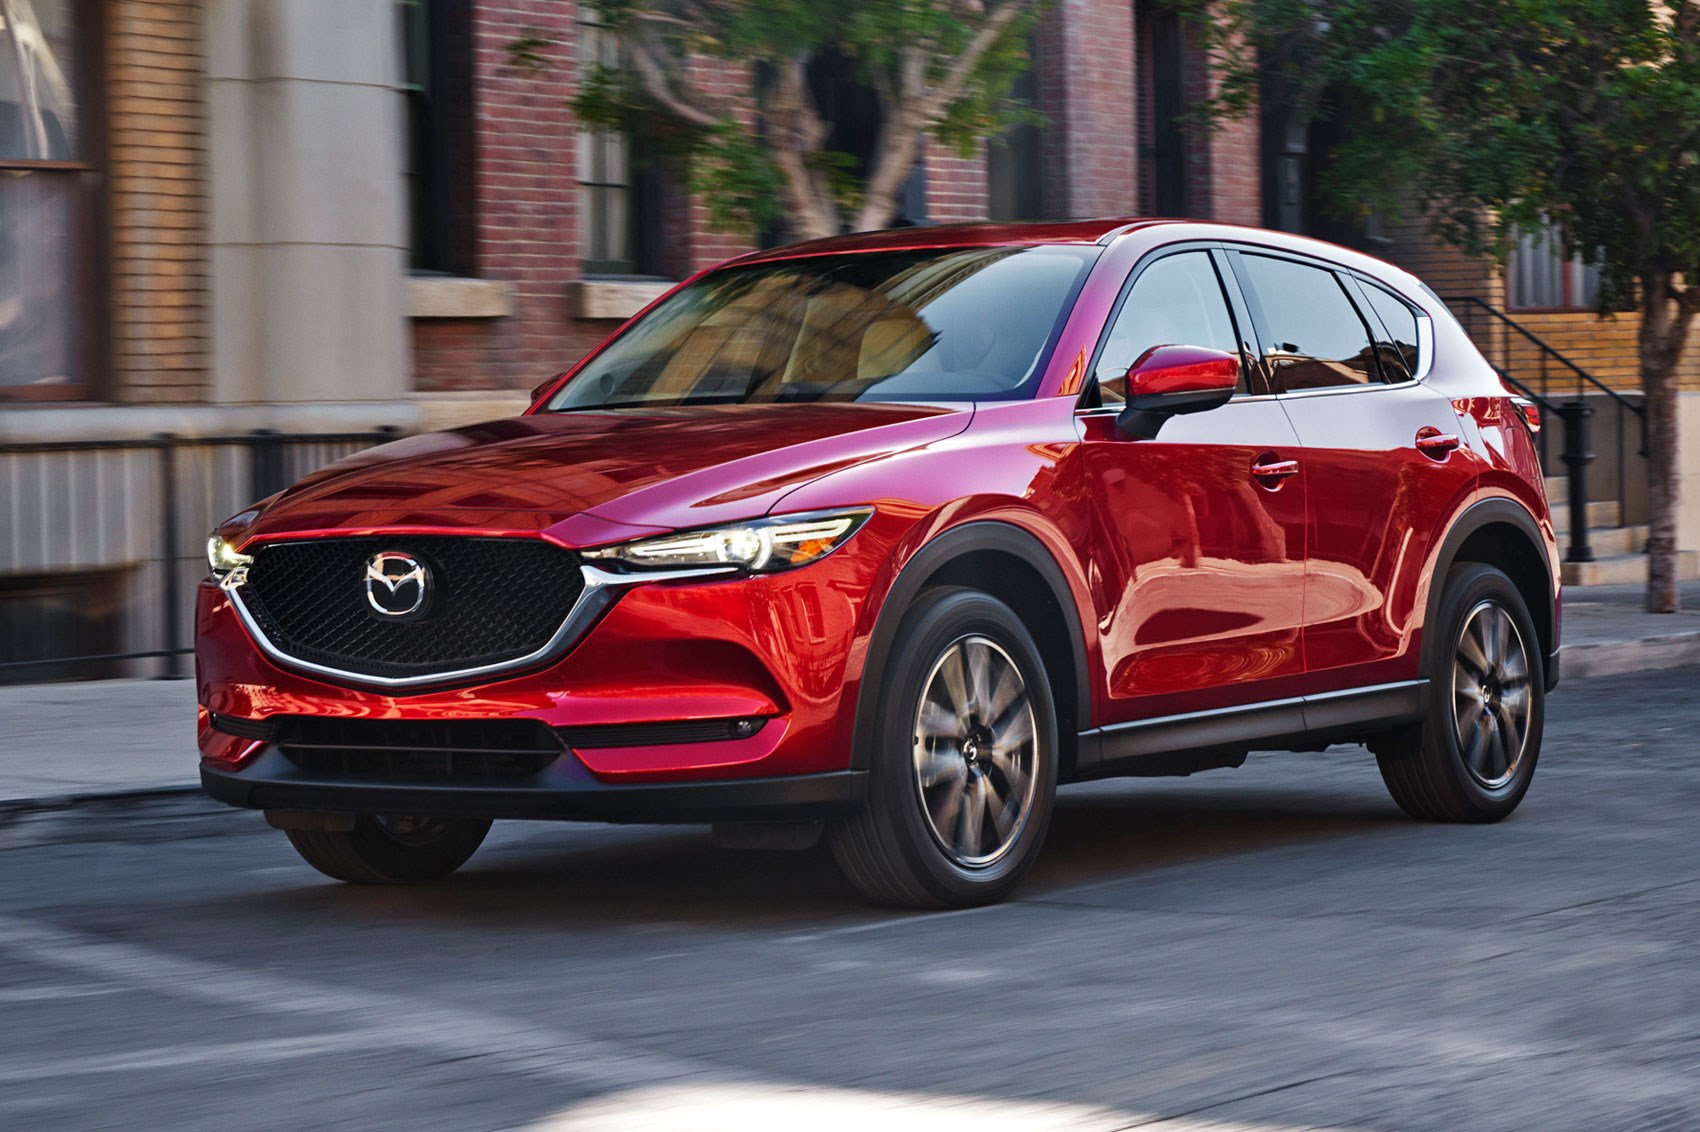 mazda unveils second generation cx 5 suv by car magazine. Black Bedroom Furniture Sets. Home Design Ideas